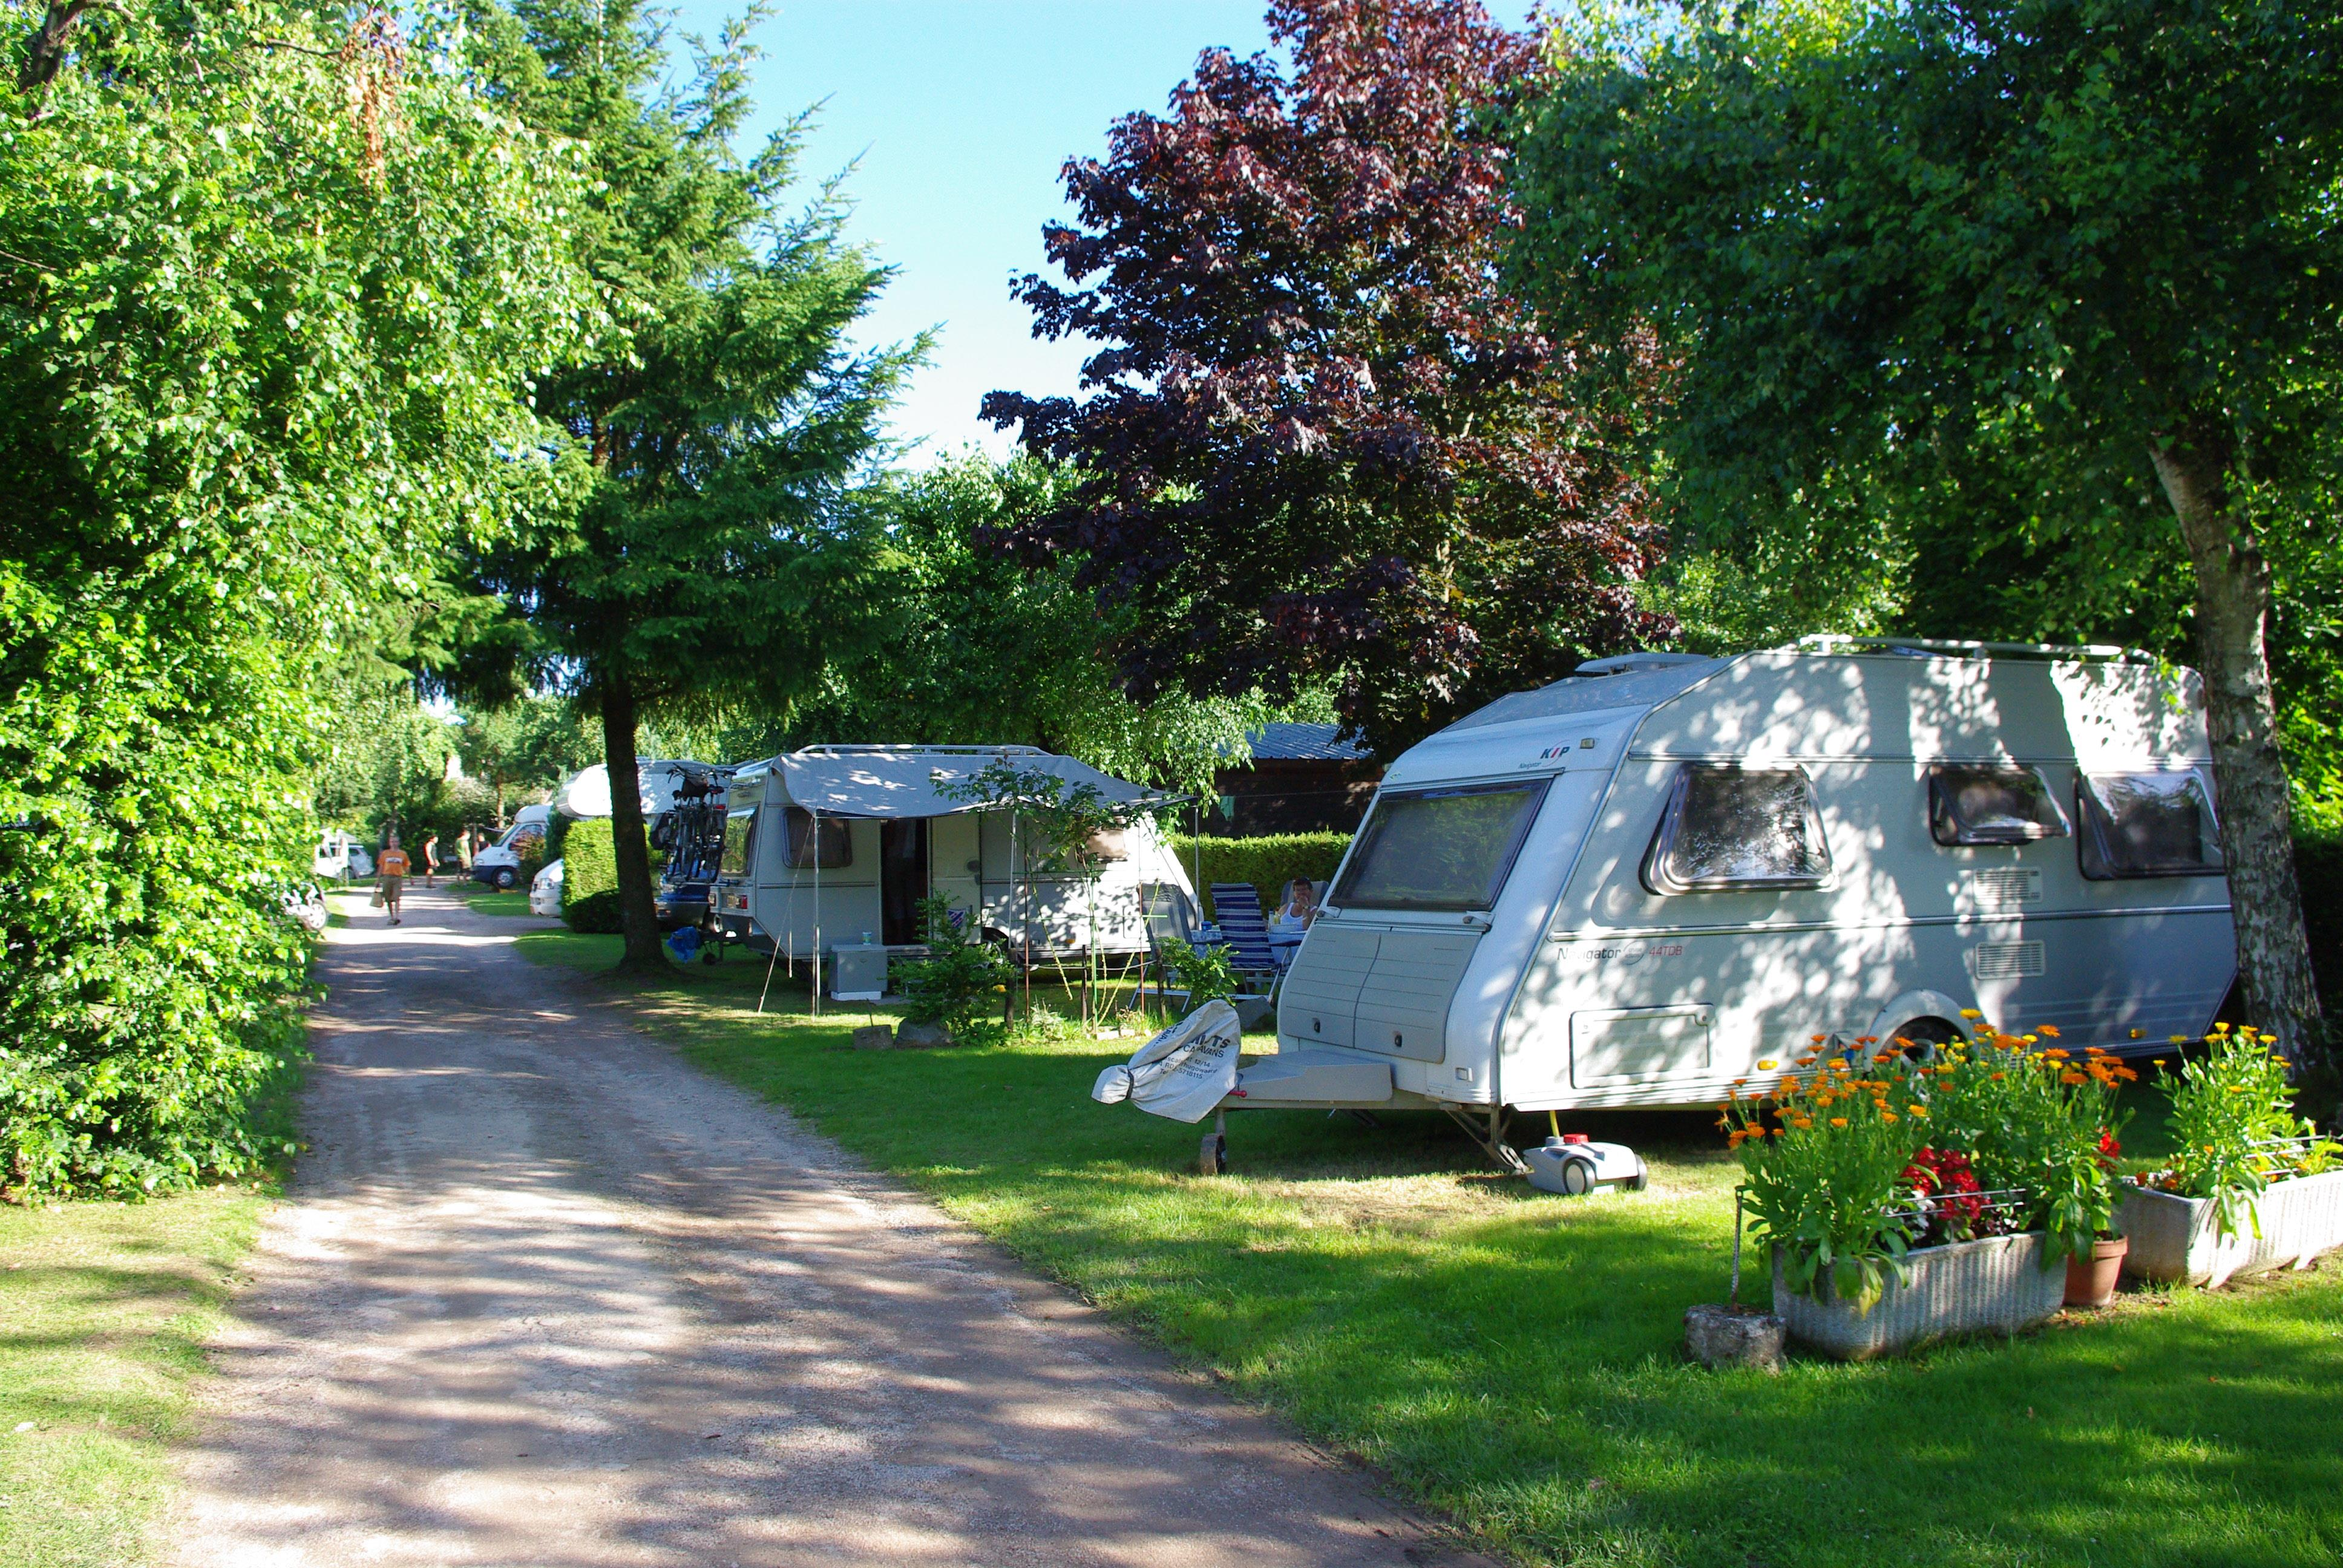 Emplacement - Emplacement - Camping Les Acacias